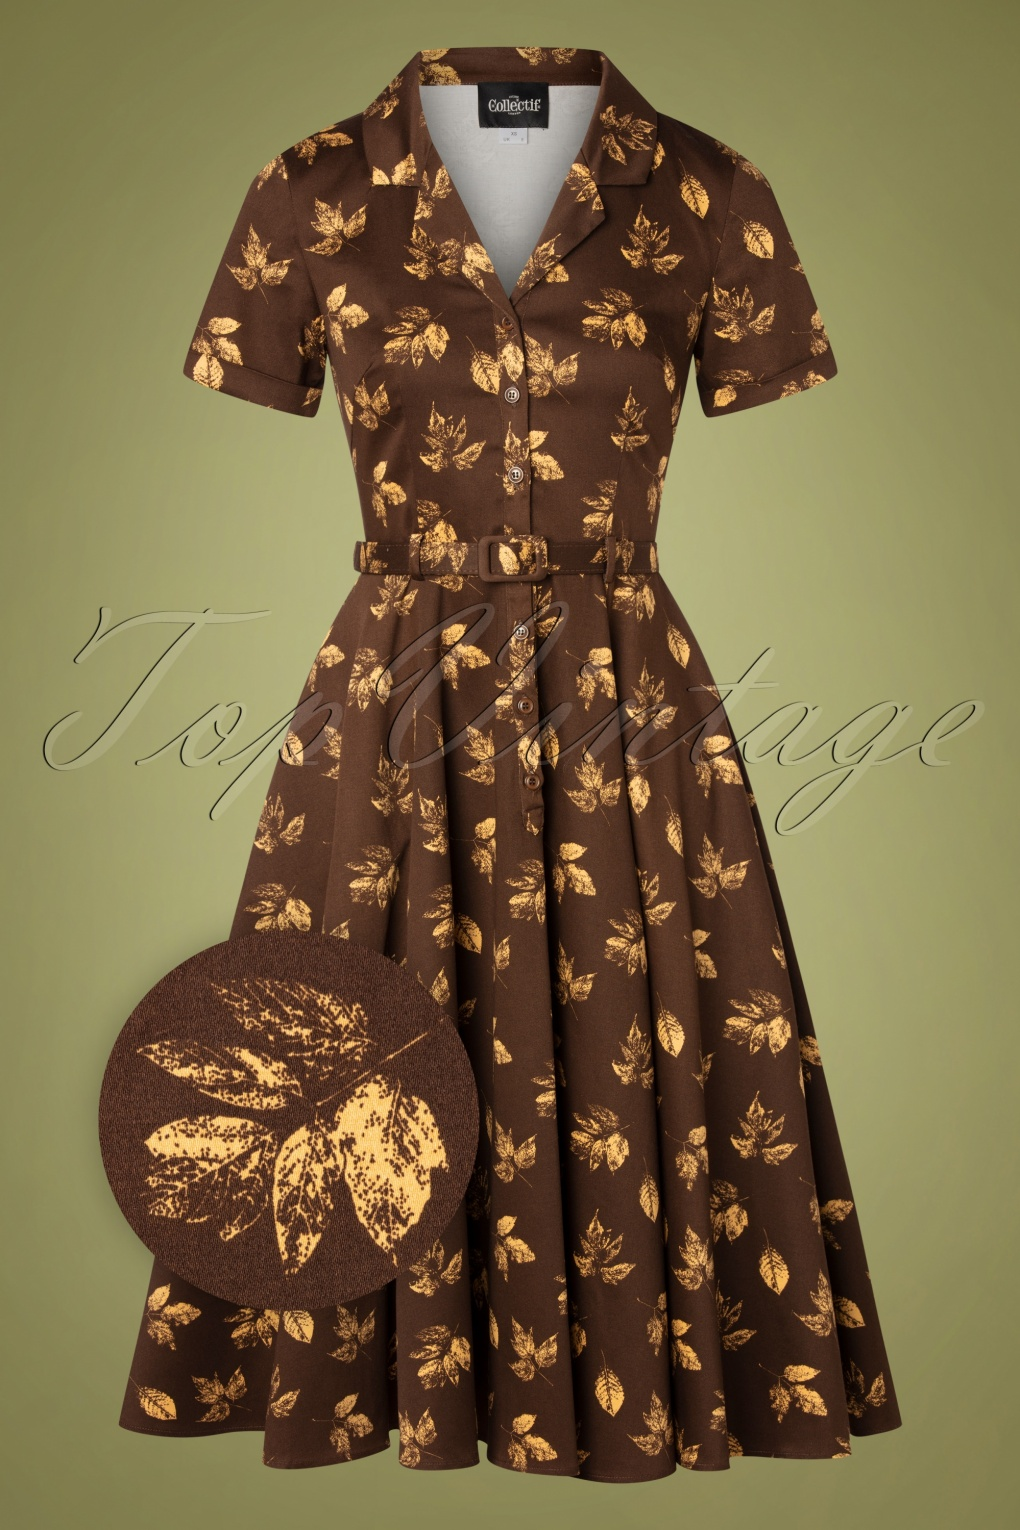 1950s Style Clothing & Fashion 50s Caterina Fall Leaves Swing Dress in Brown £72.56 AT vintagedancer.com